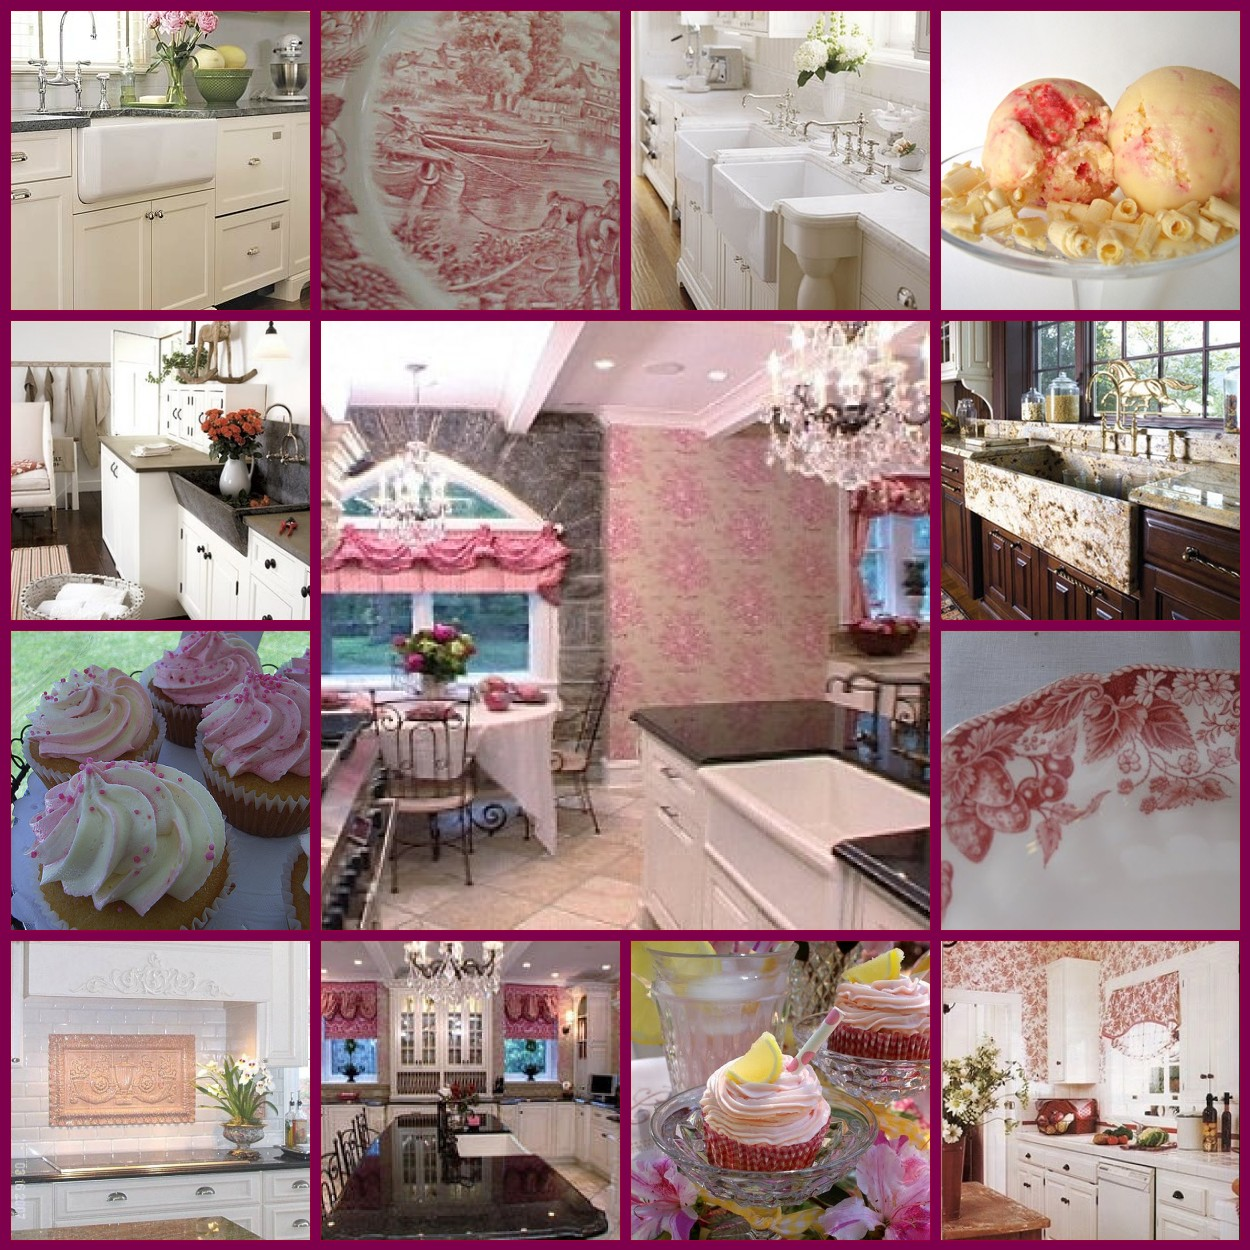 Dream Kitchen Rockland Maine: Estelle's: A Dream Kitchen...Pink French Country Toile